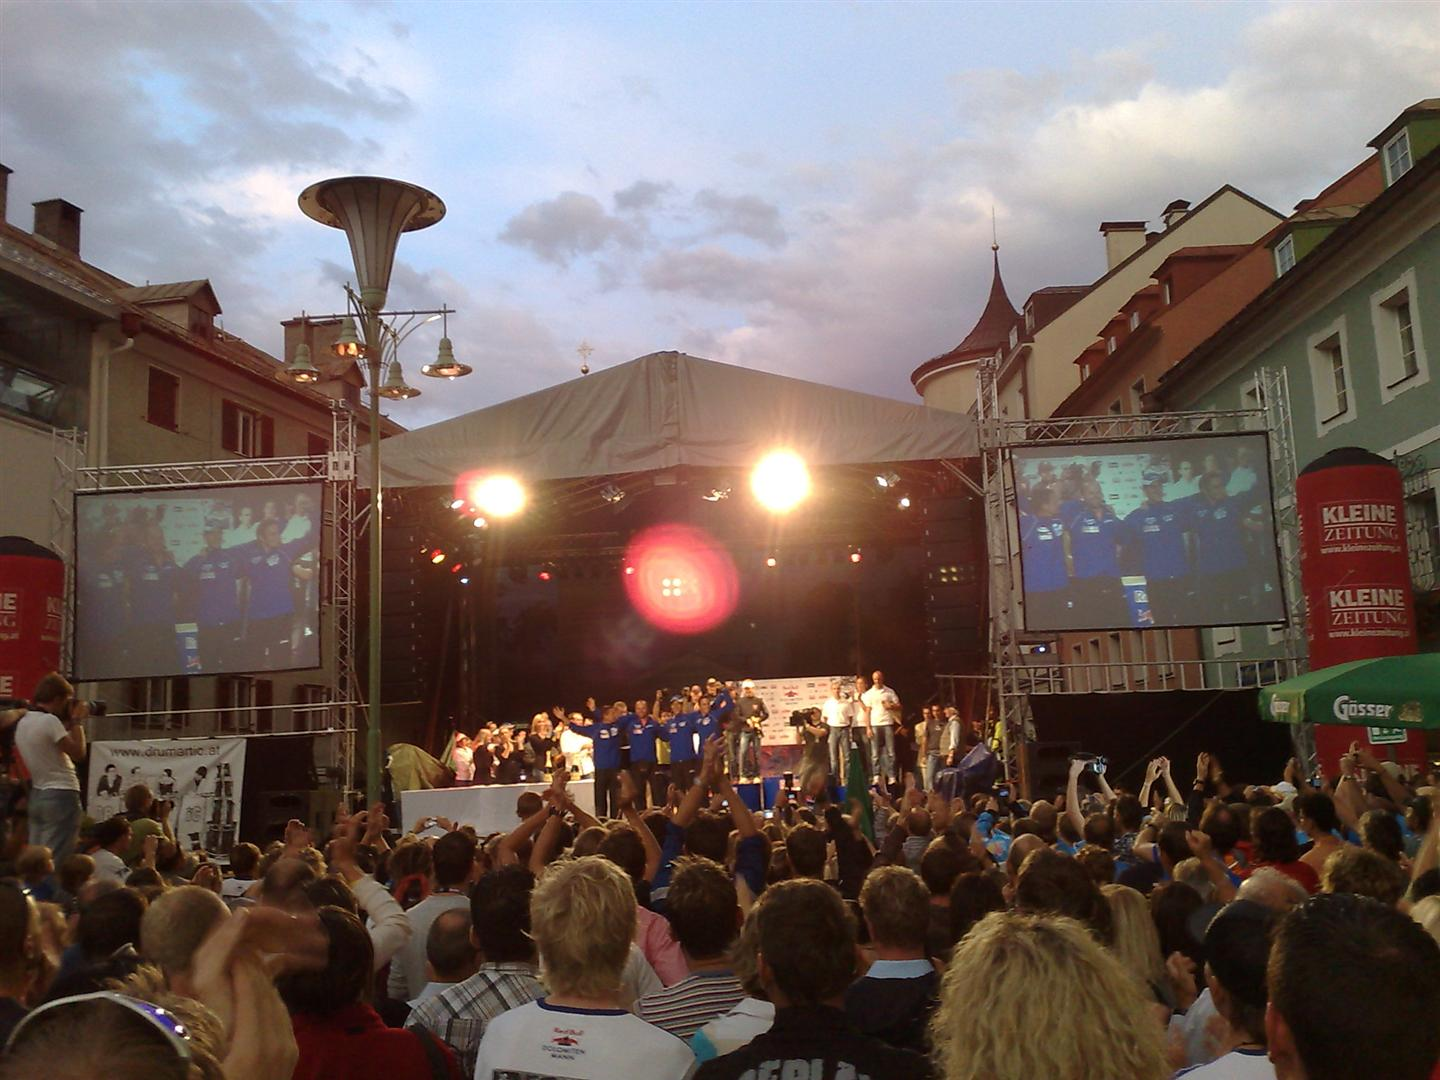 Seasonal events in Lienz